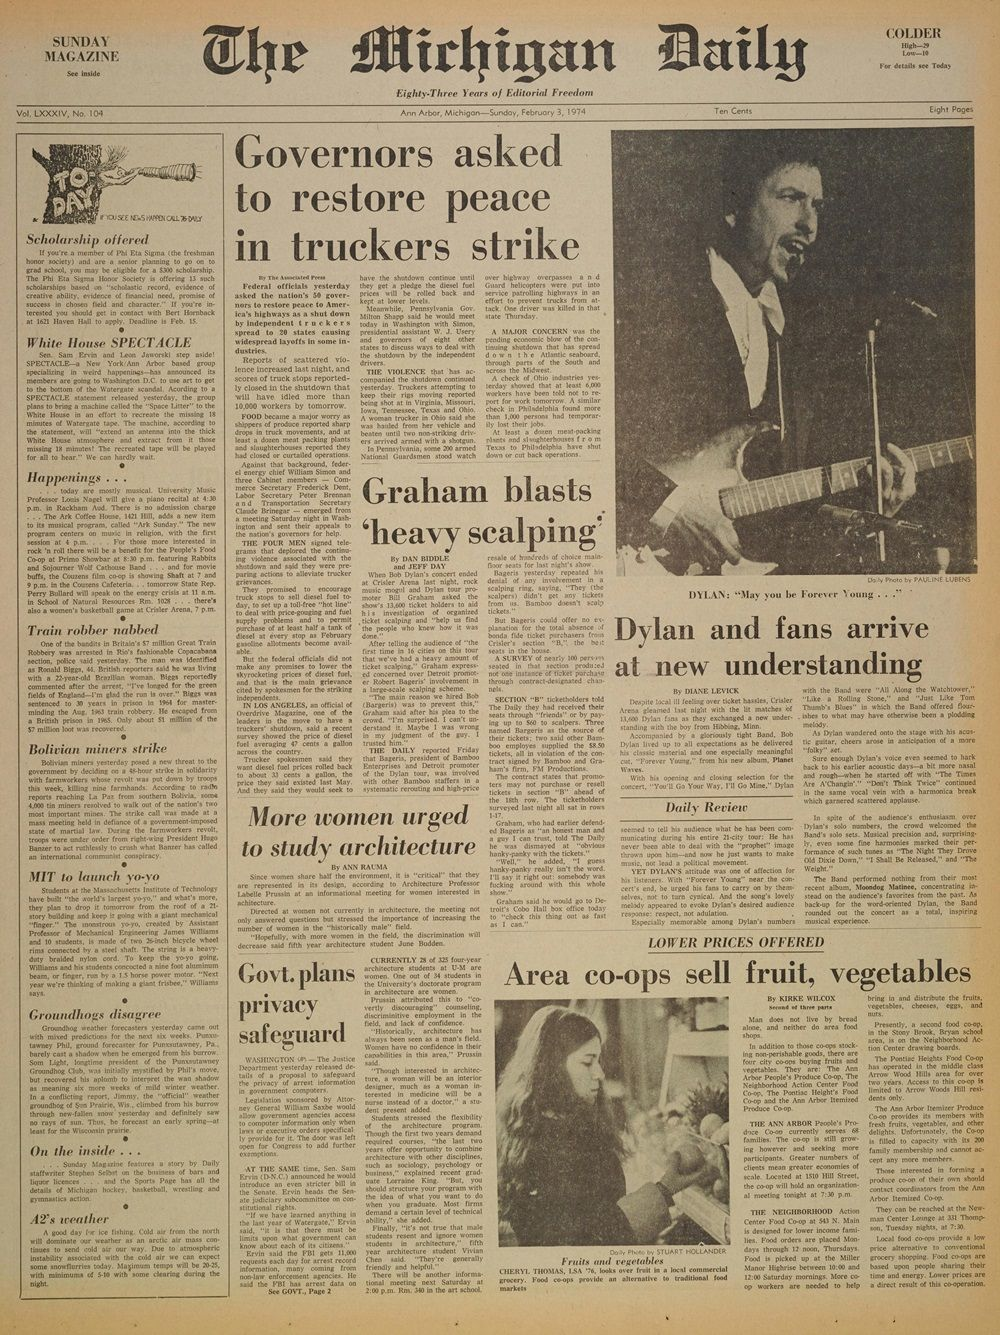 the Michigan daily 3 Feb 1974 Bob Dylan cover story